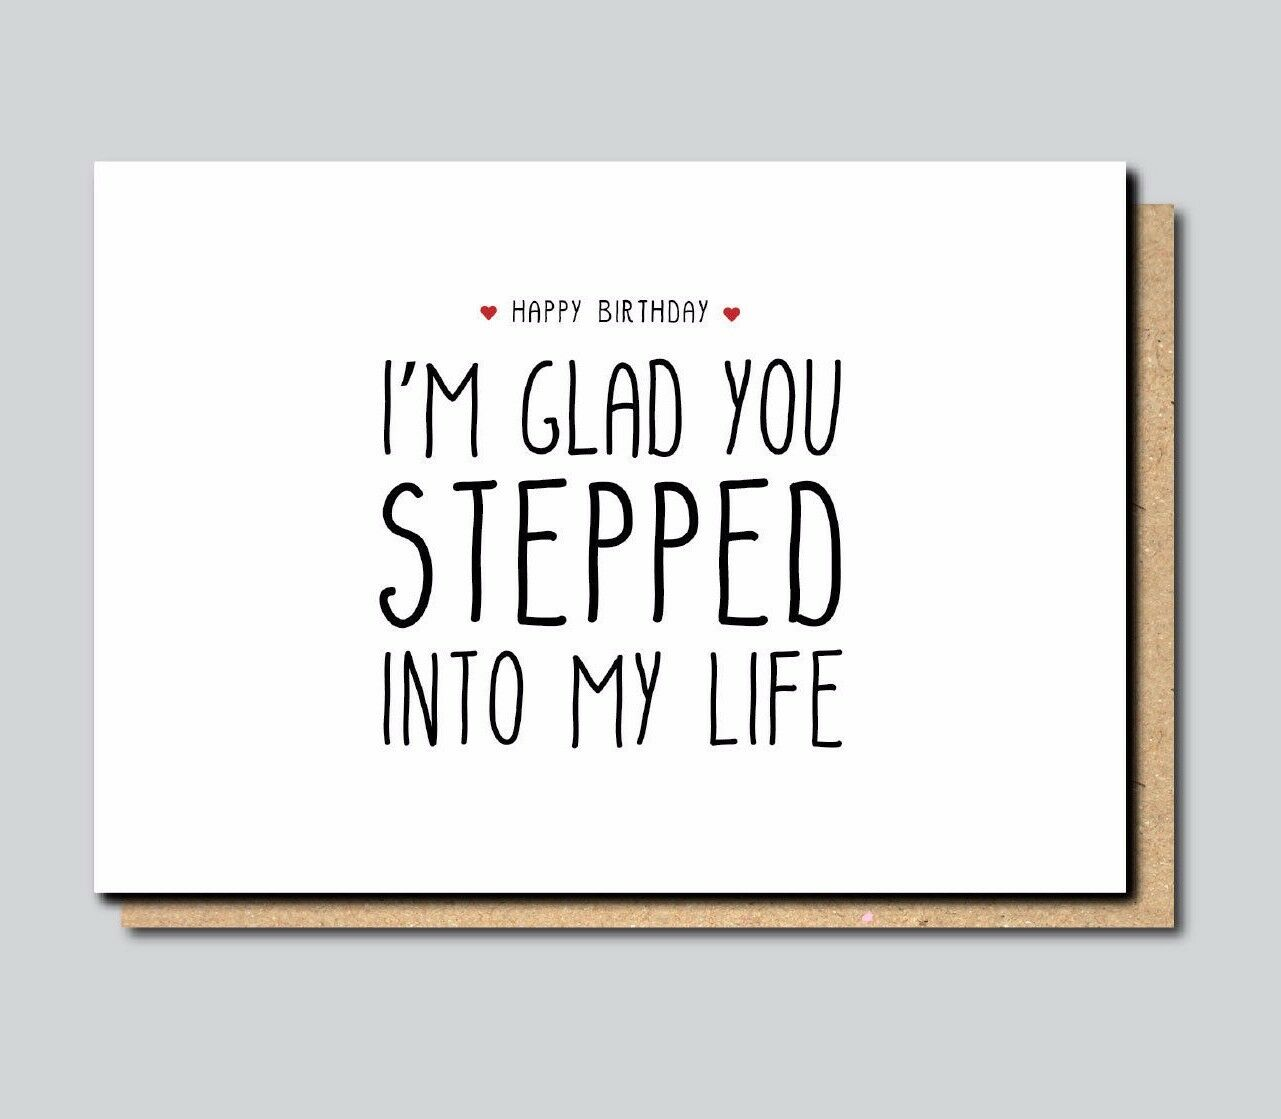 Funny Greeting Card For Stepdad Stepfather Birthday Fathers Day